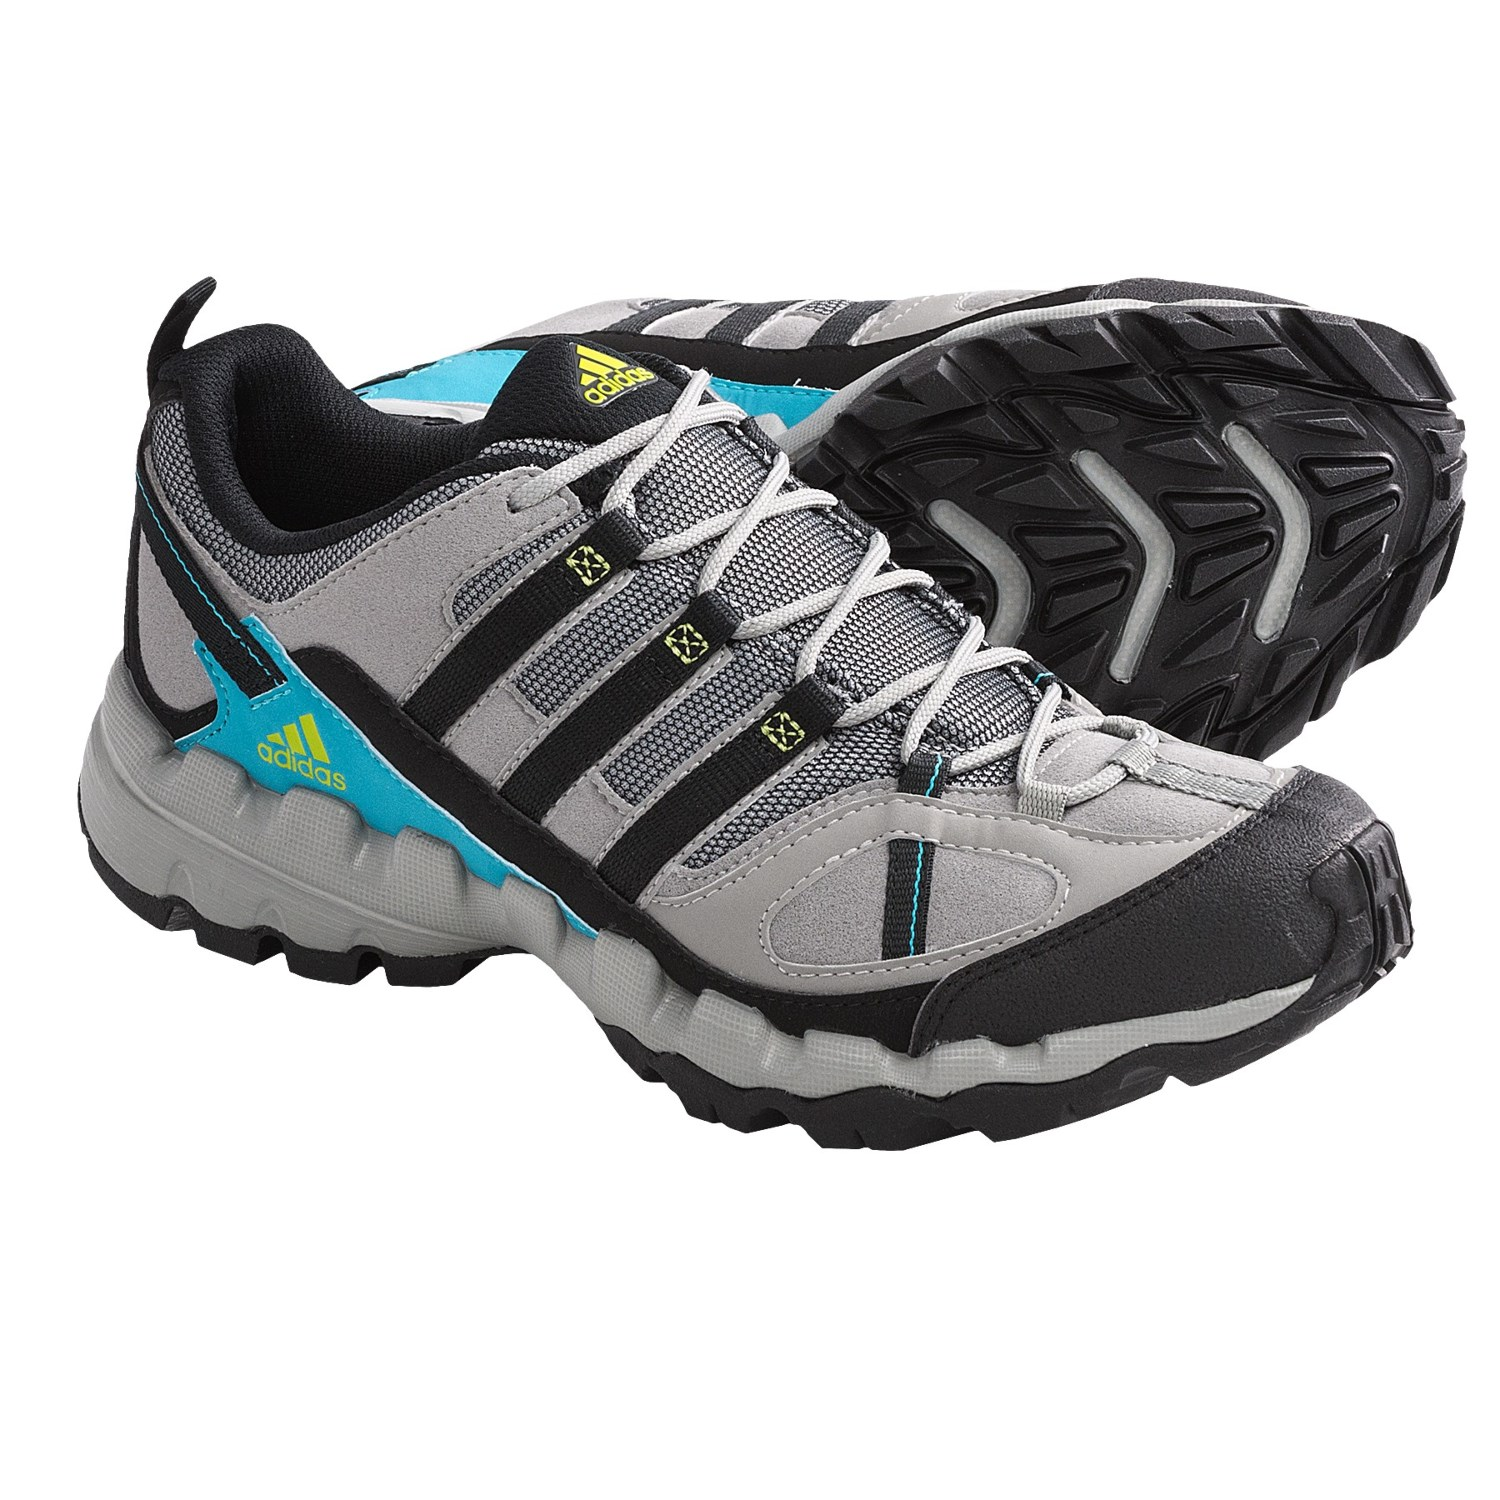 Adidas Ax Outdoor Shoes